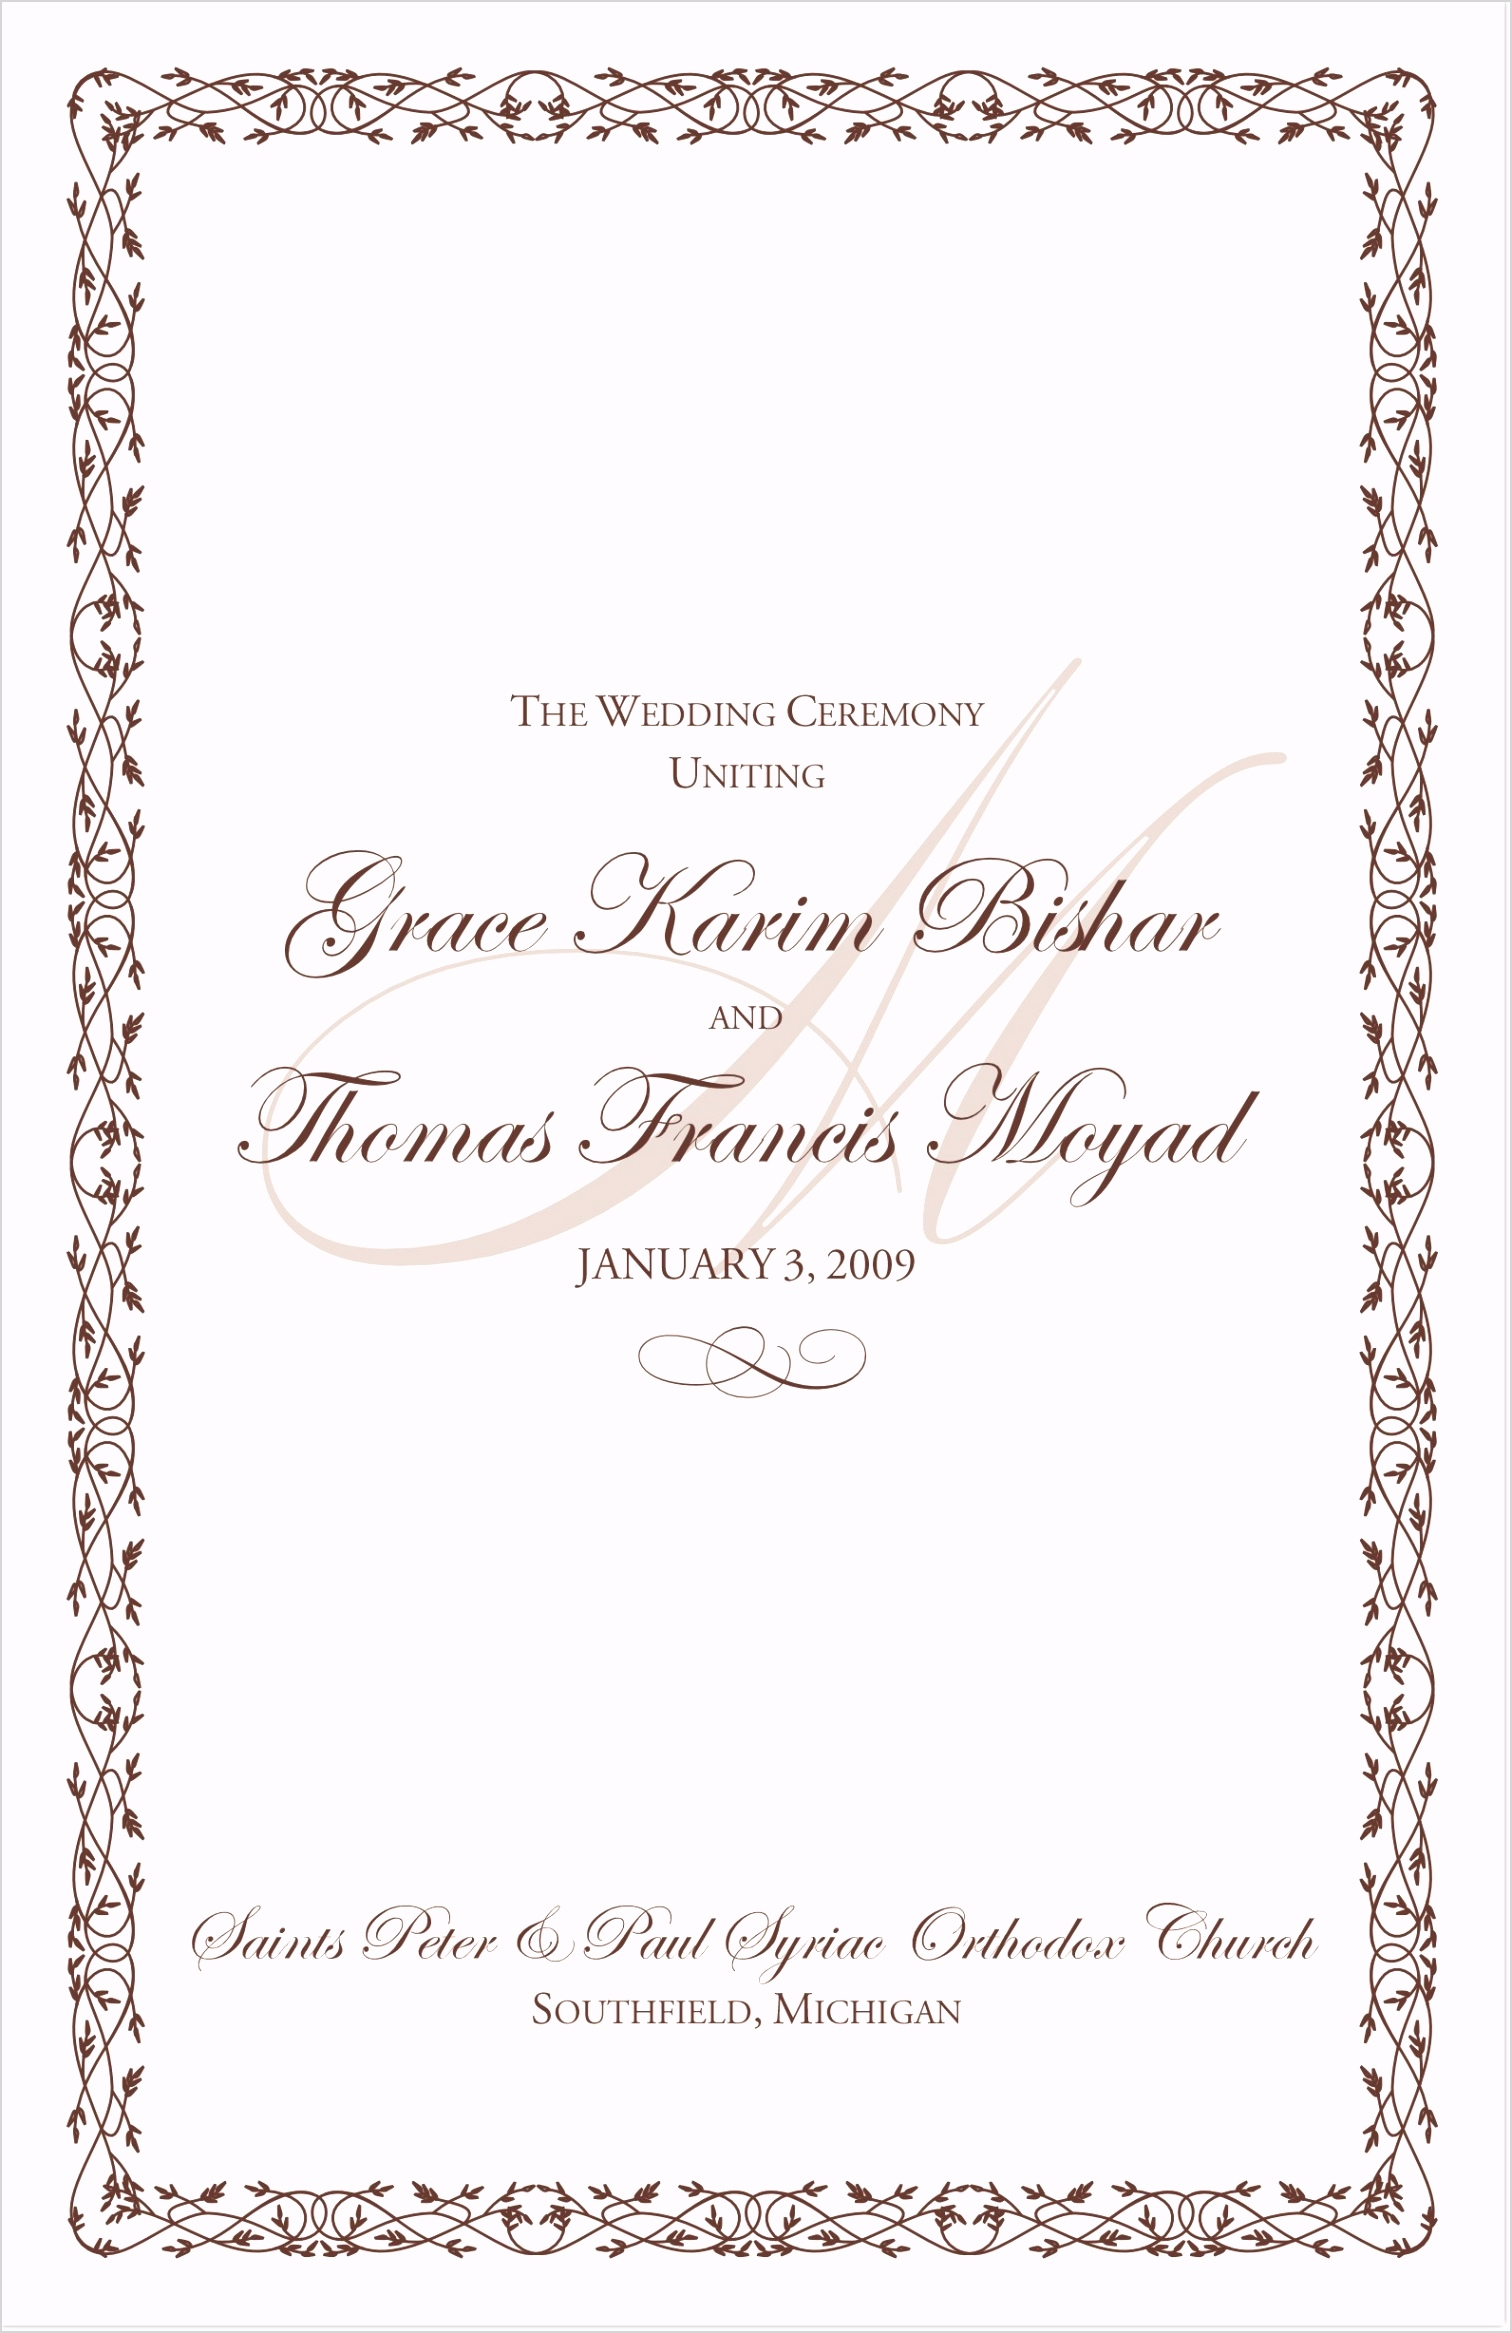 Wedding Ceremony Seating Chart Template 59420 Uug0w Wedding Program Wording Templates for Greek and Russian Hlu@[o H G T E N B E B T D A S D F G H J K L O I U Y T R M N W C G T Y U X Z C C X Z A S Q W D D A J H H U I K J T U F I E F D W H I O C P L O K I U J M N H Y T R F V C D E W S X Z A Q S Z X C V B N M N B V C C X Z A Q W E E D C V T